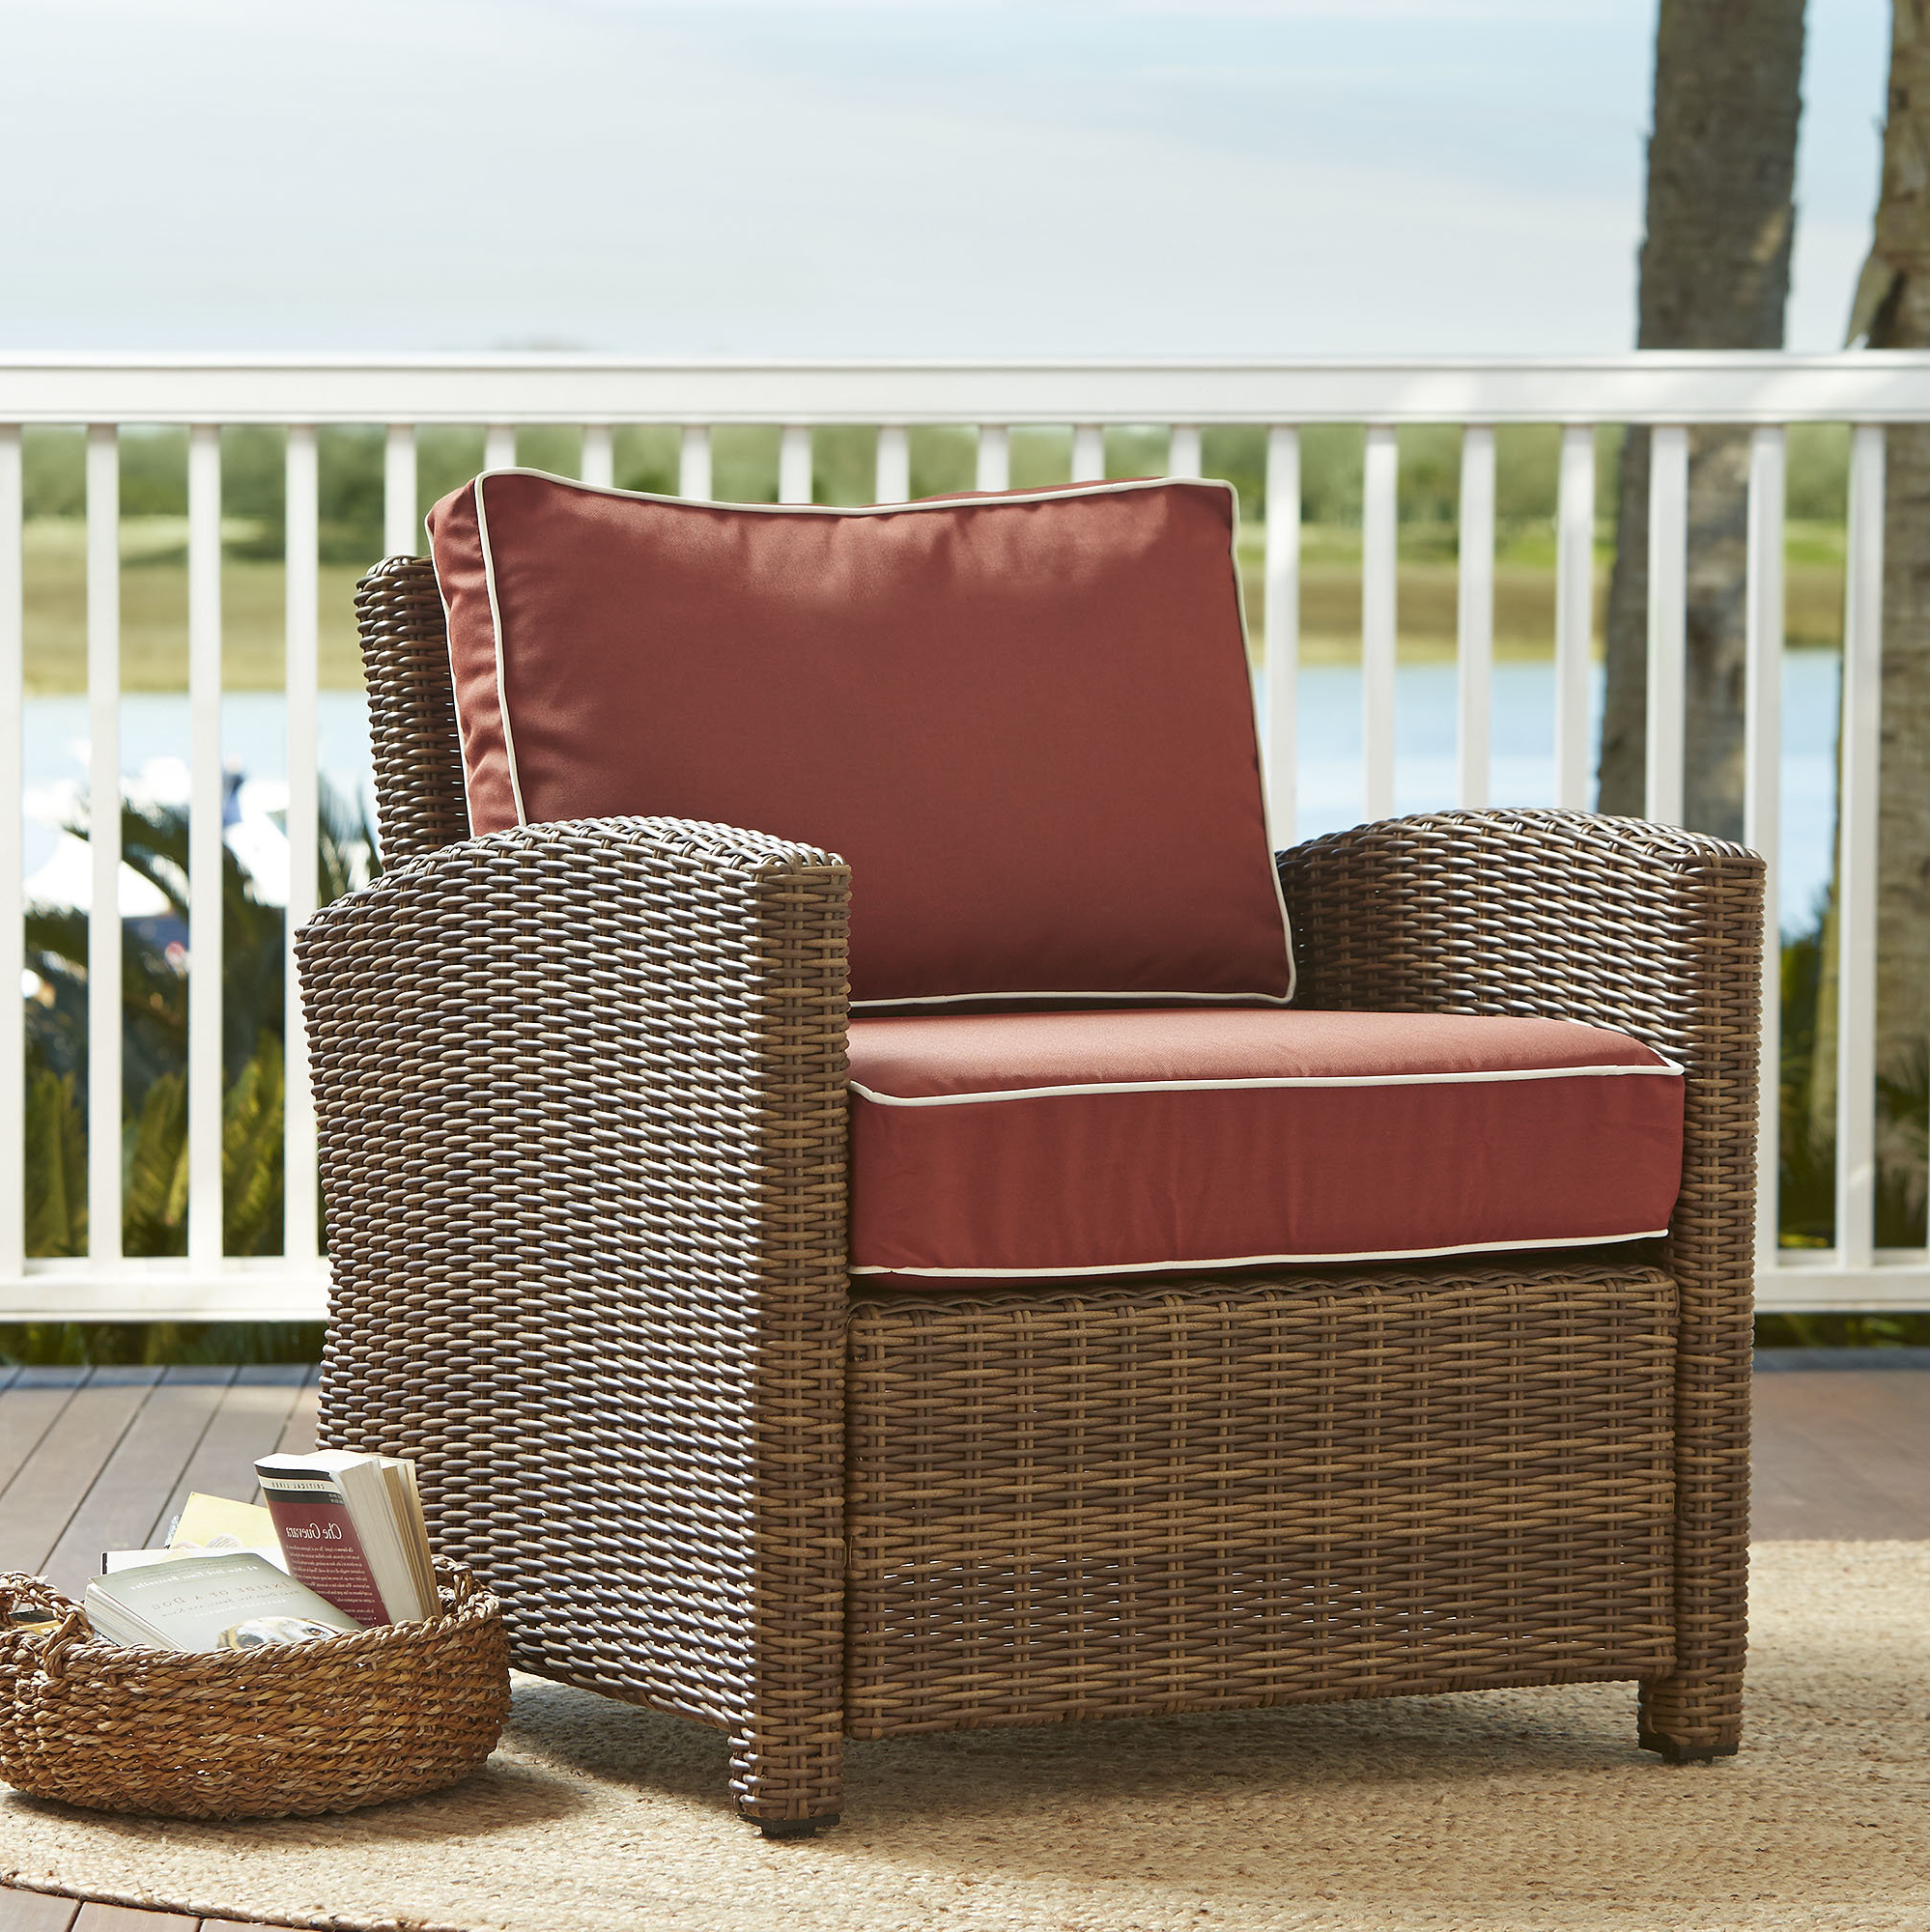 Lawson Patio Chair With Cushions Within Best And Newest Belton Patio Sofas With Cushions (Gallery 19 of 25)